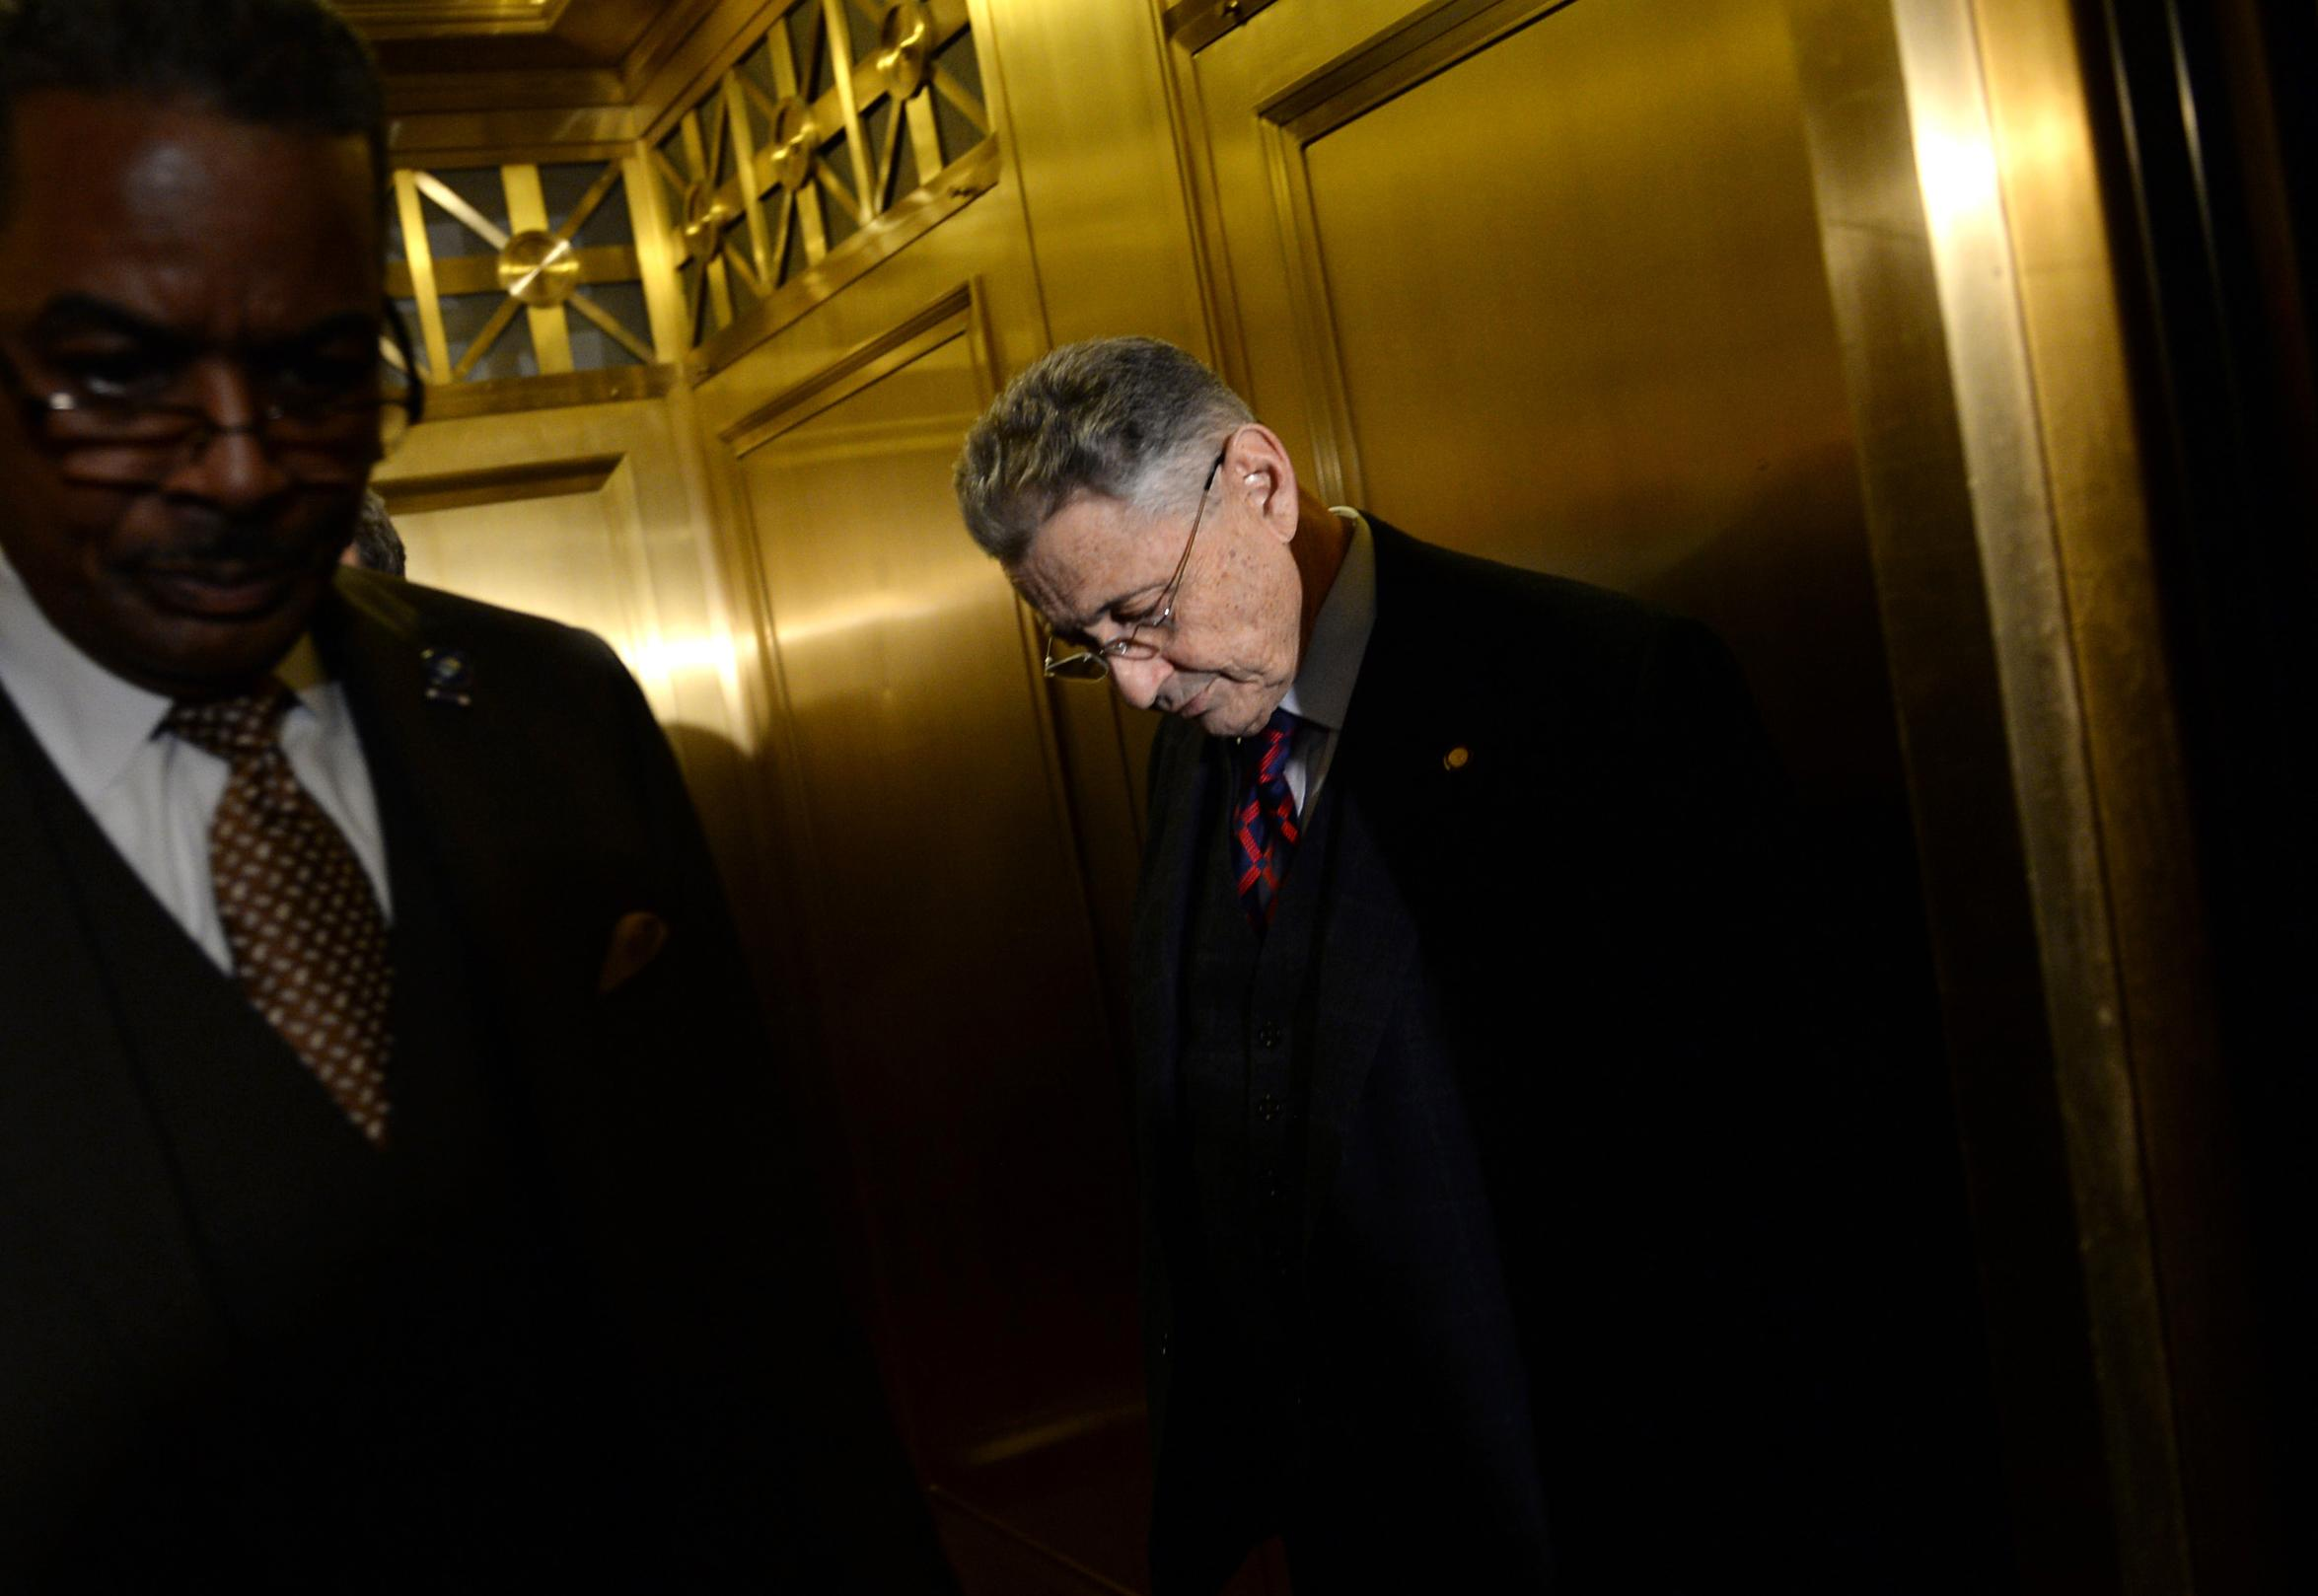 New York Assembly Speaker Sheldon Silver: a retrospective